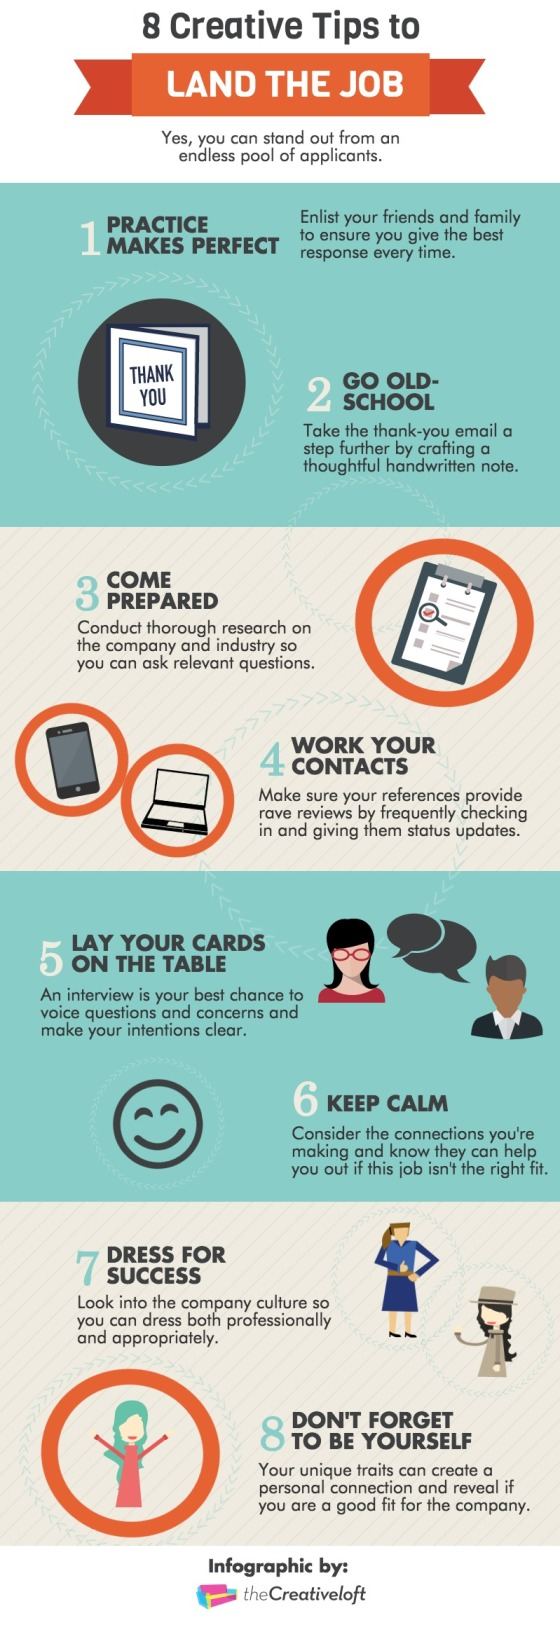 Infographic : 8 Creative Tips to Land the Job